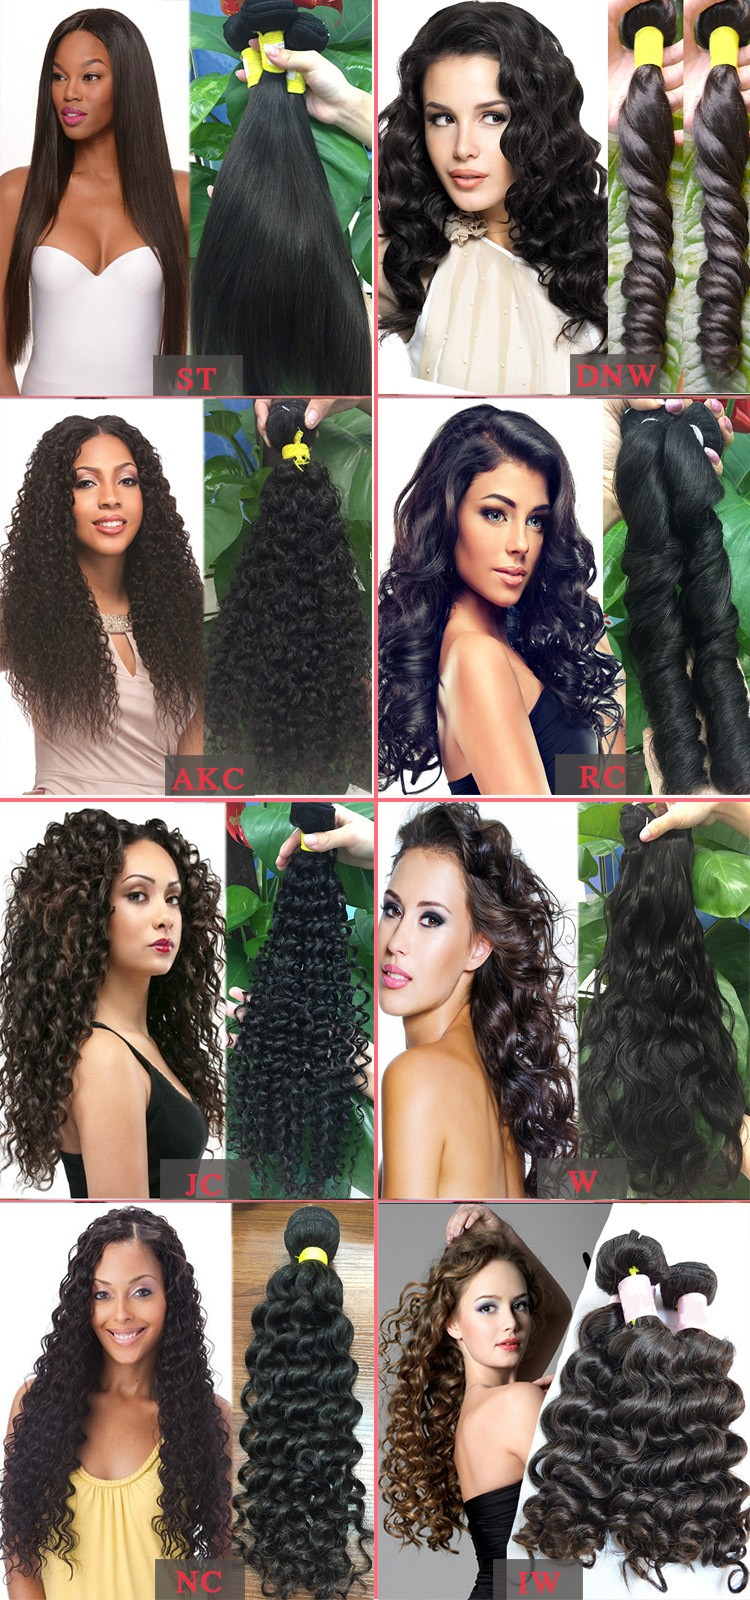 Curly Human Hair Wigs For Black Women Natural Afro Hair Extension